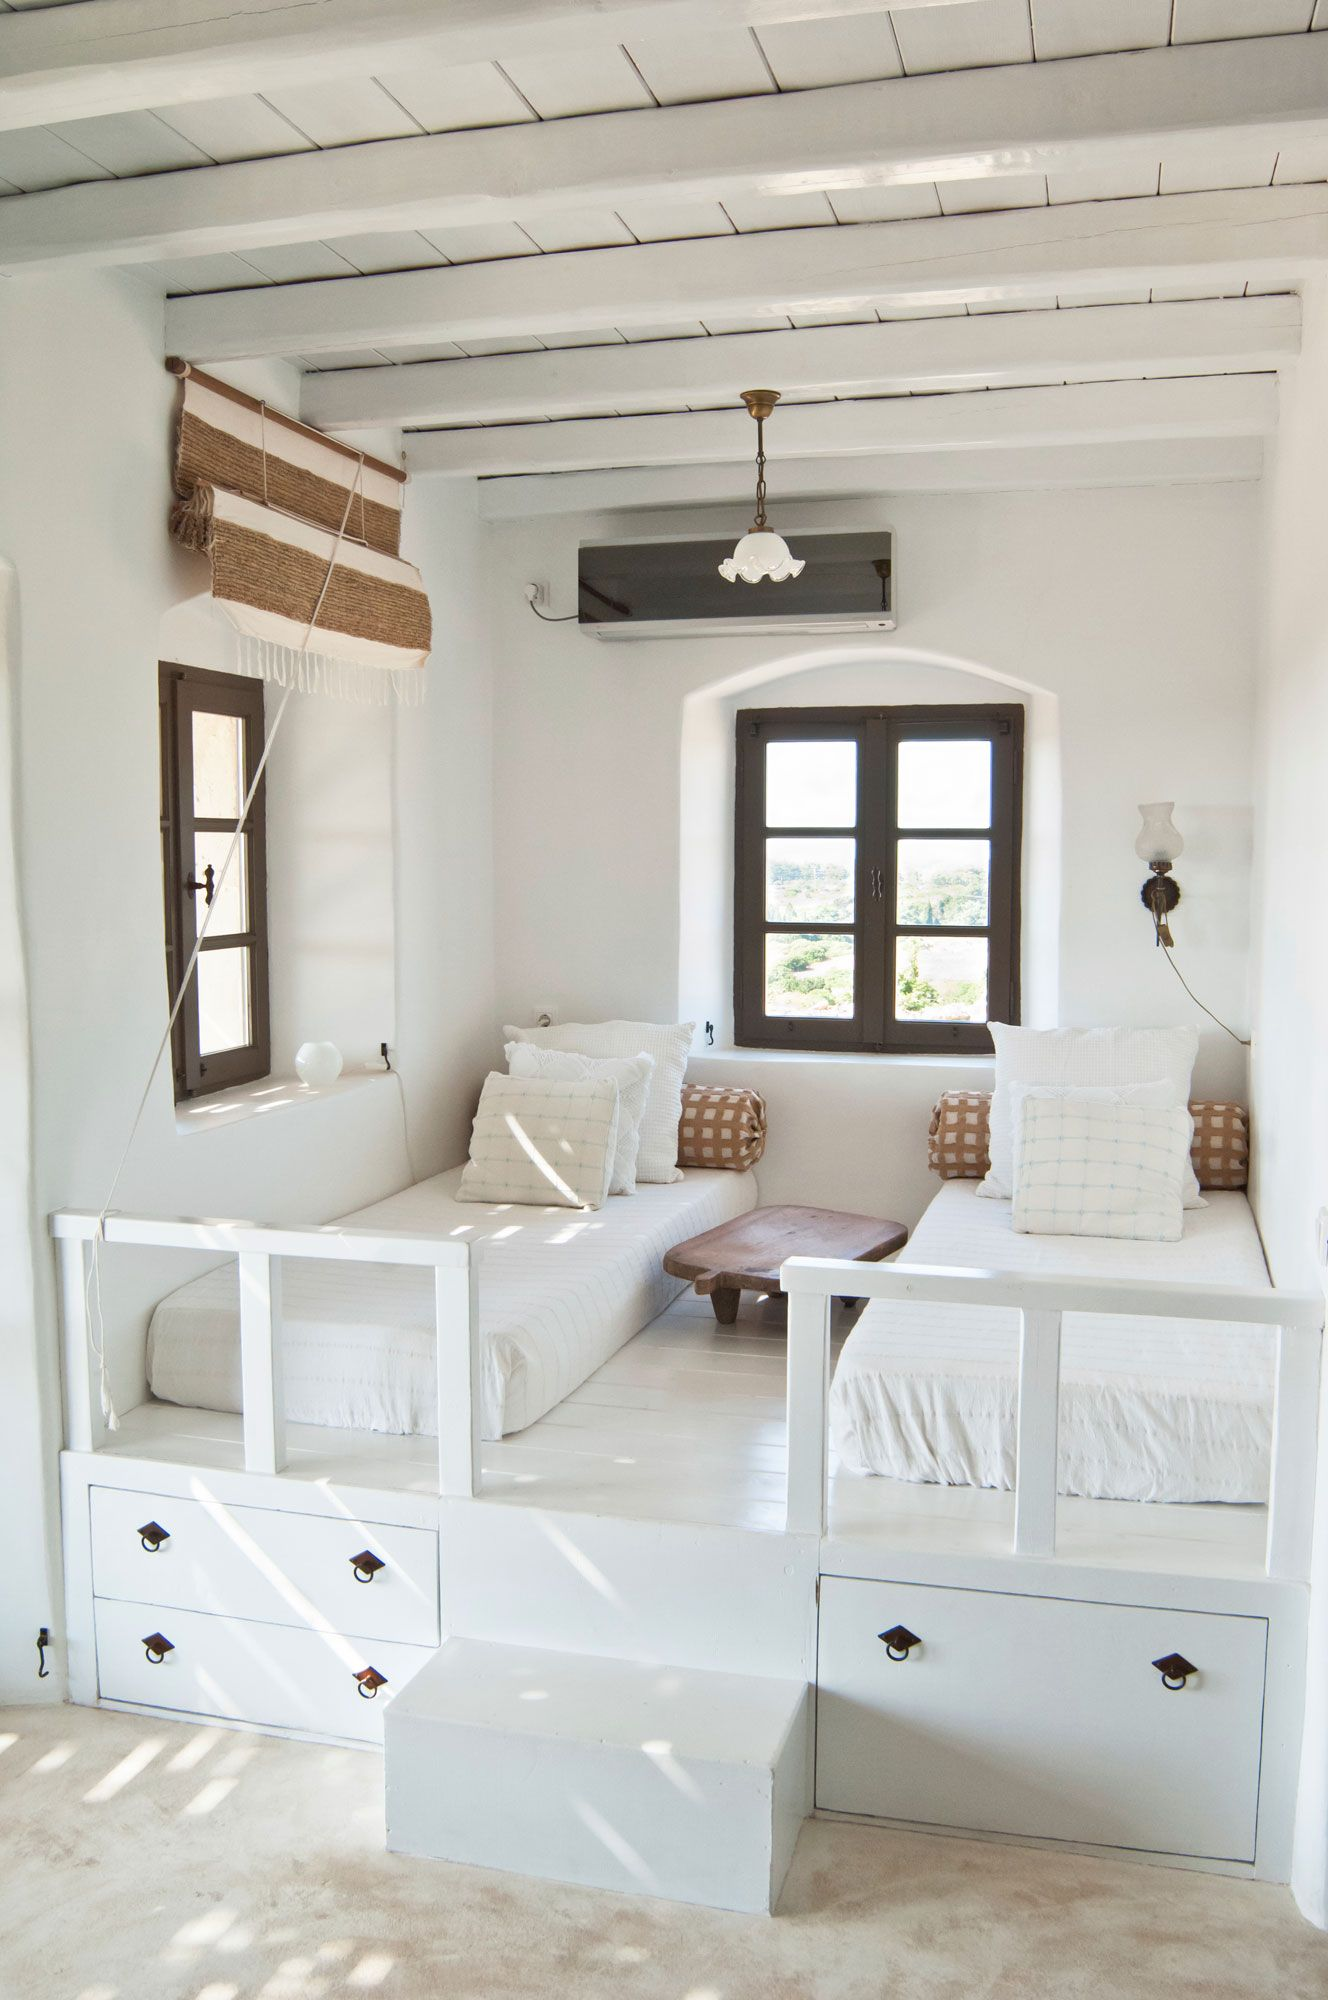 Ideas para decorar una casa en la playa